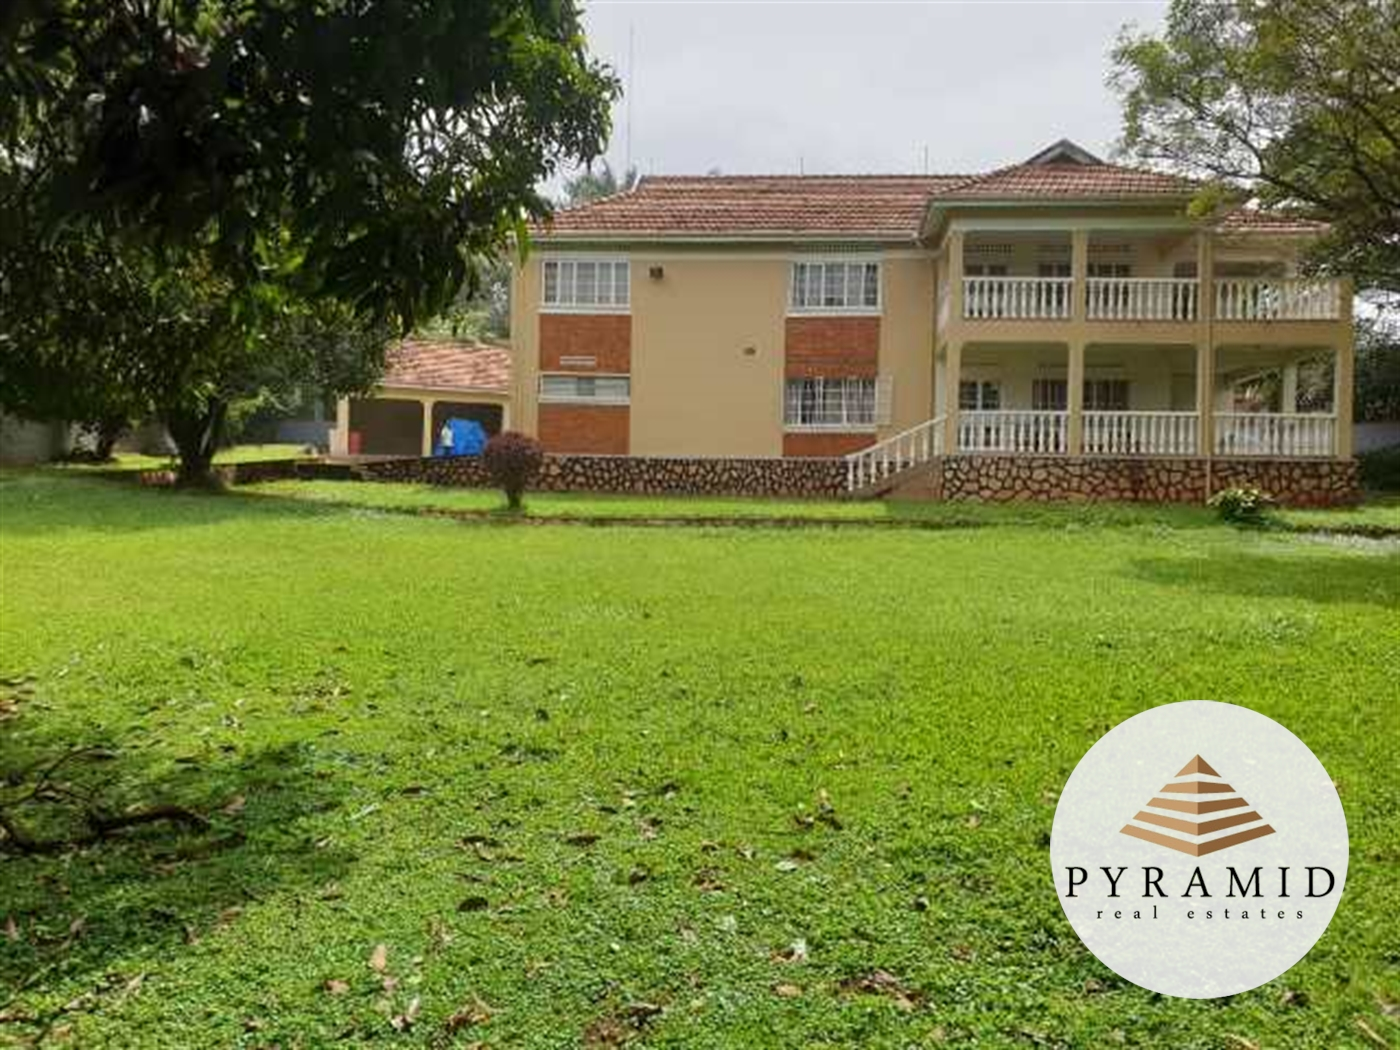 Mansion for rent in Naguru Kampala